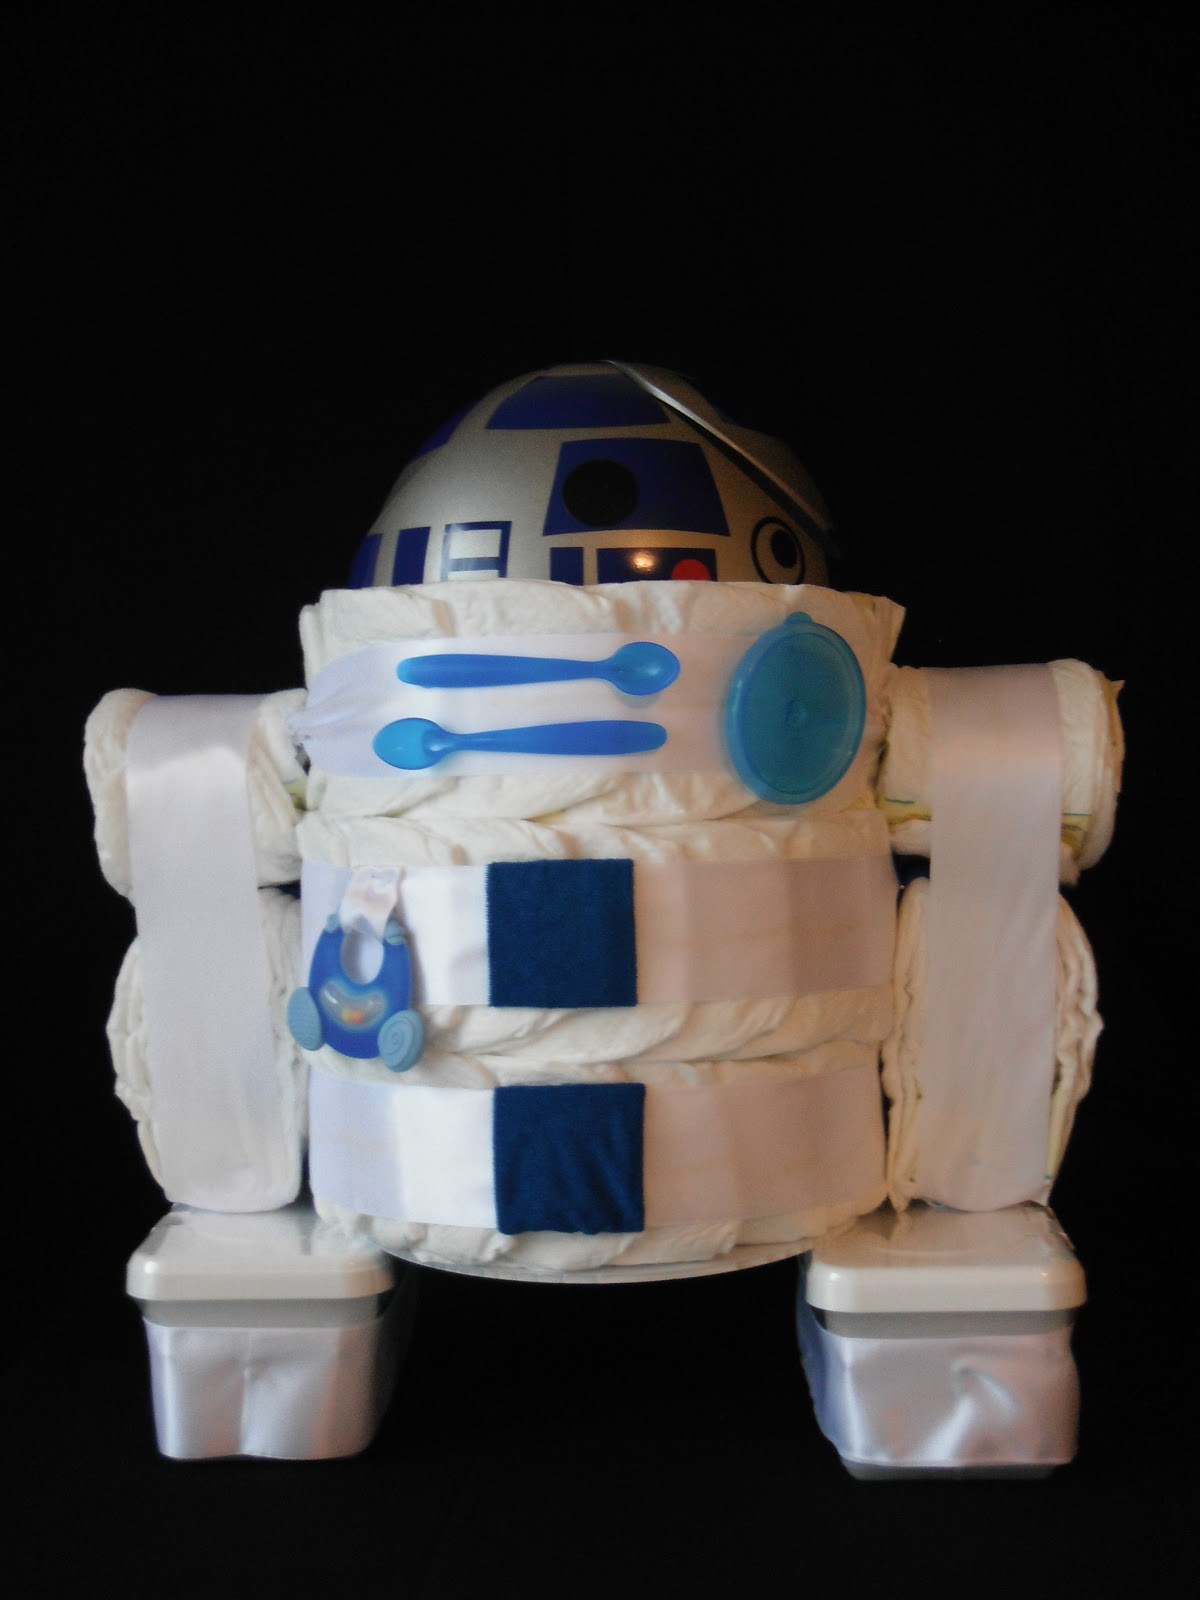 Kc Creation Star Wars R2d2 Diaper Cake